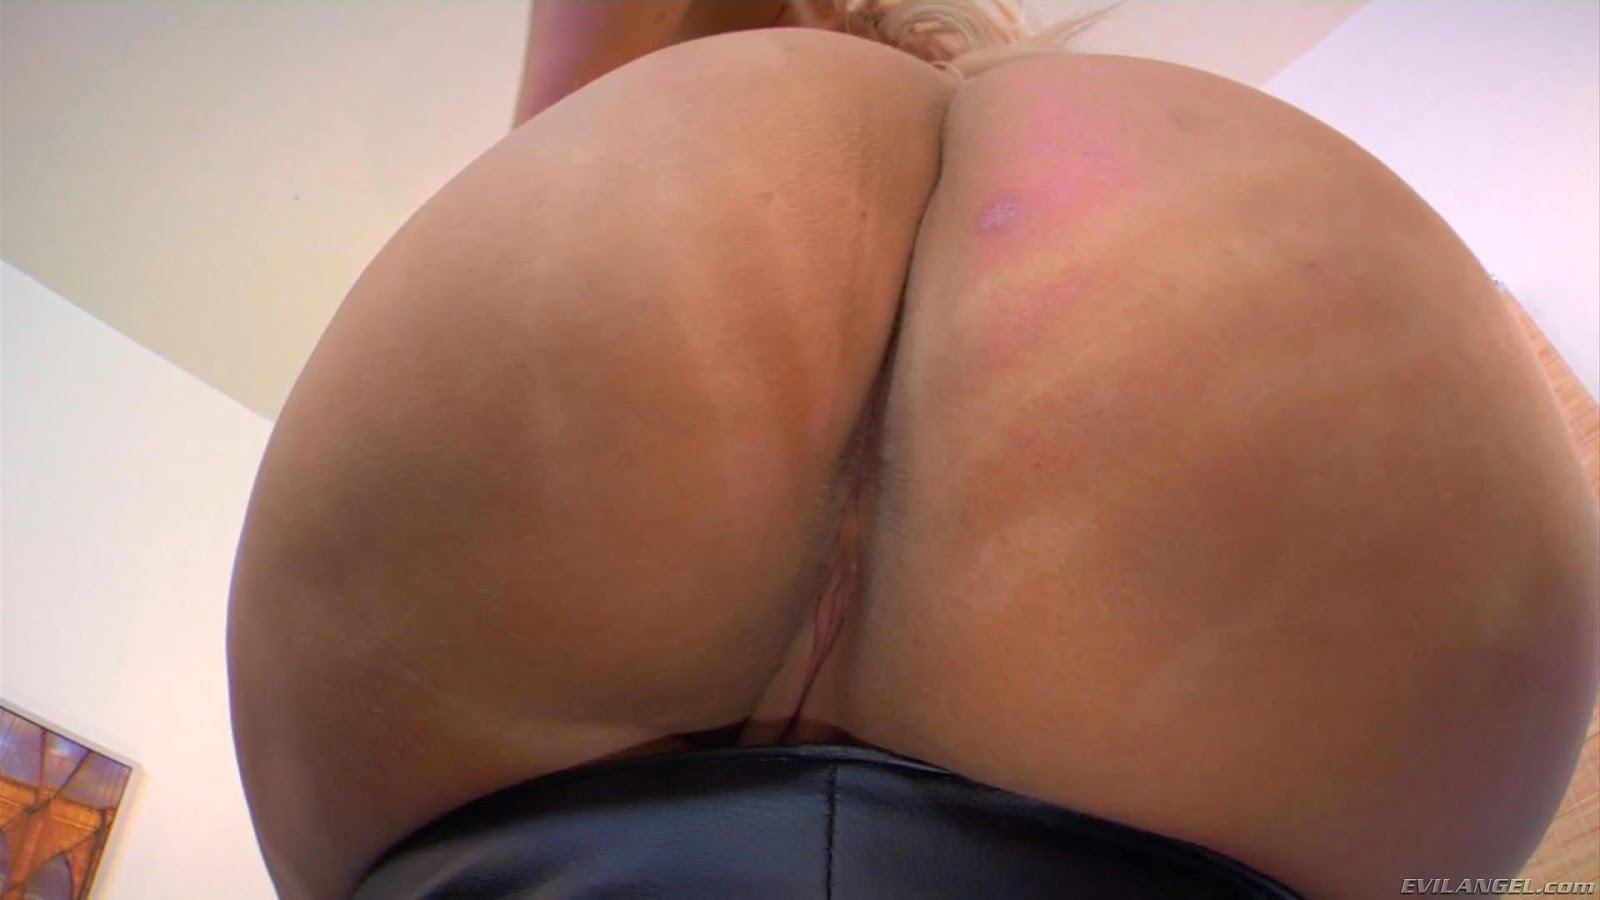 Big ass virgo peridot does bbc anal 5